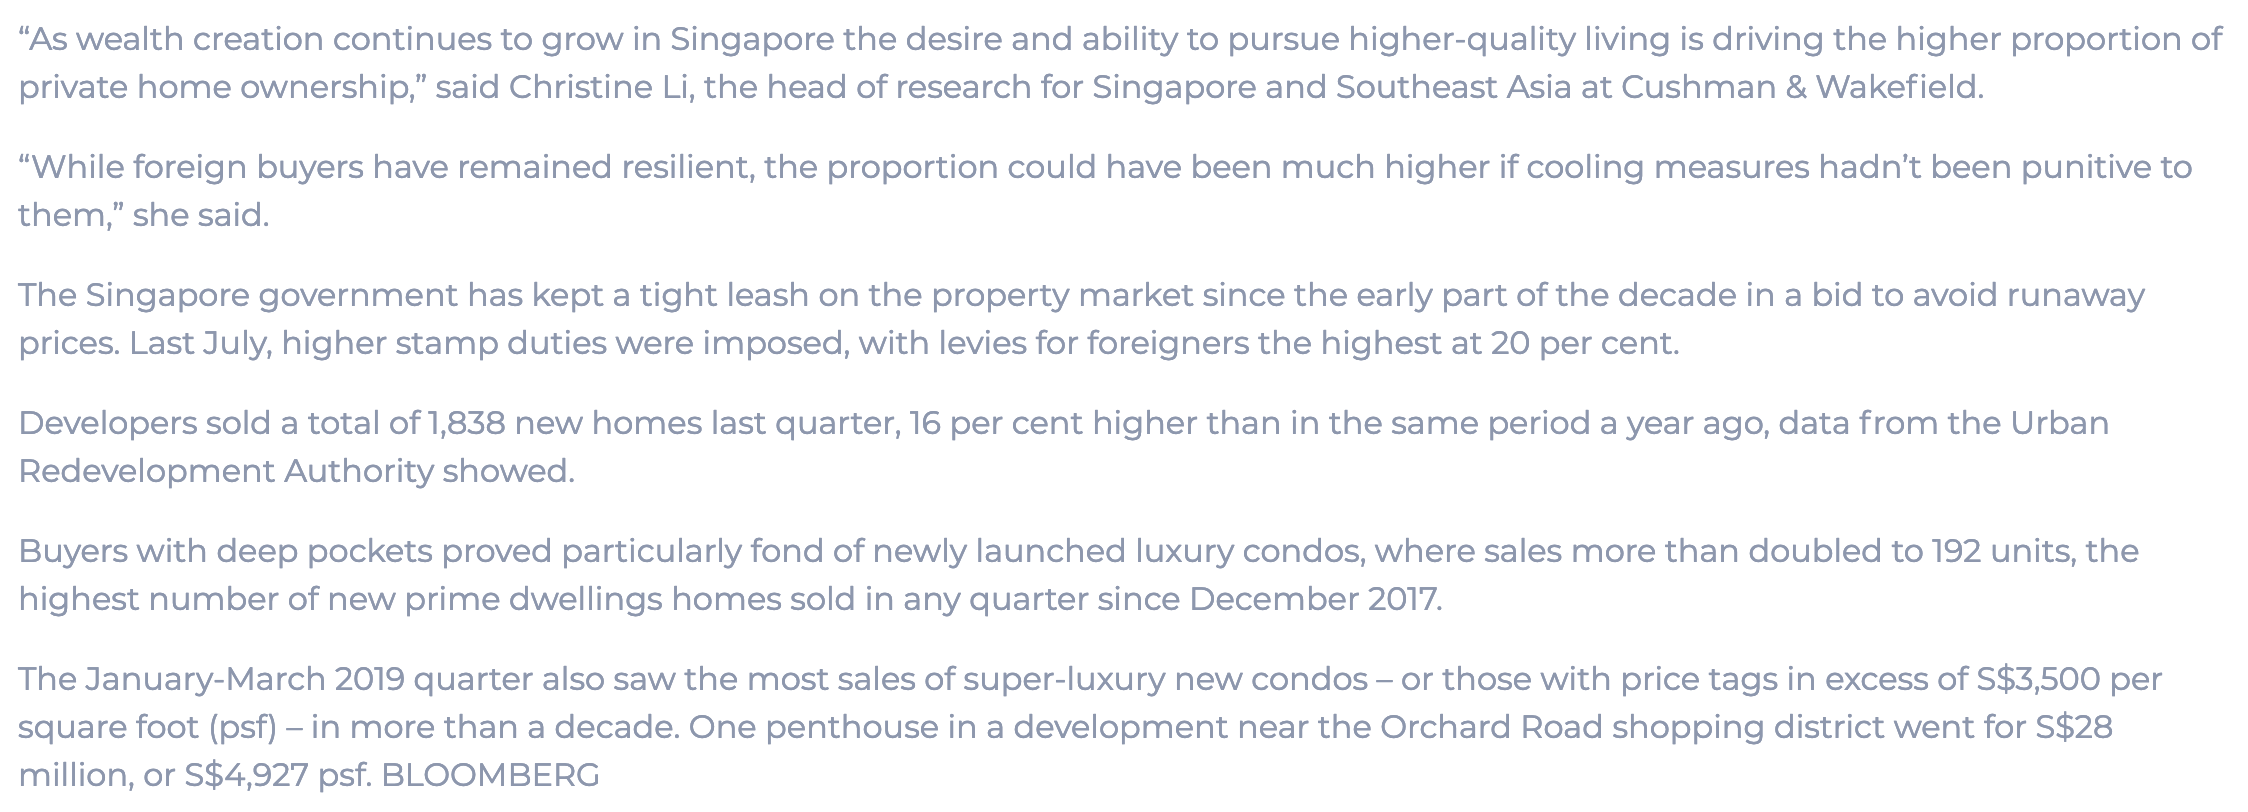 Singaporeans-Share-of-Local-Home-Purchases-Surges-in-Q1a